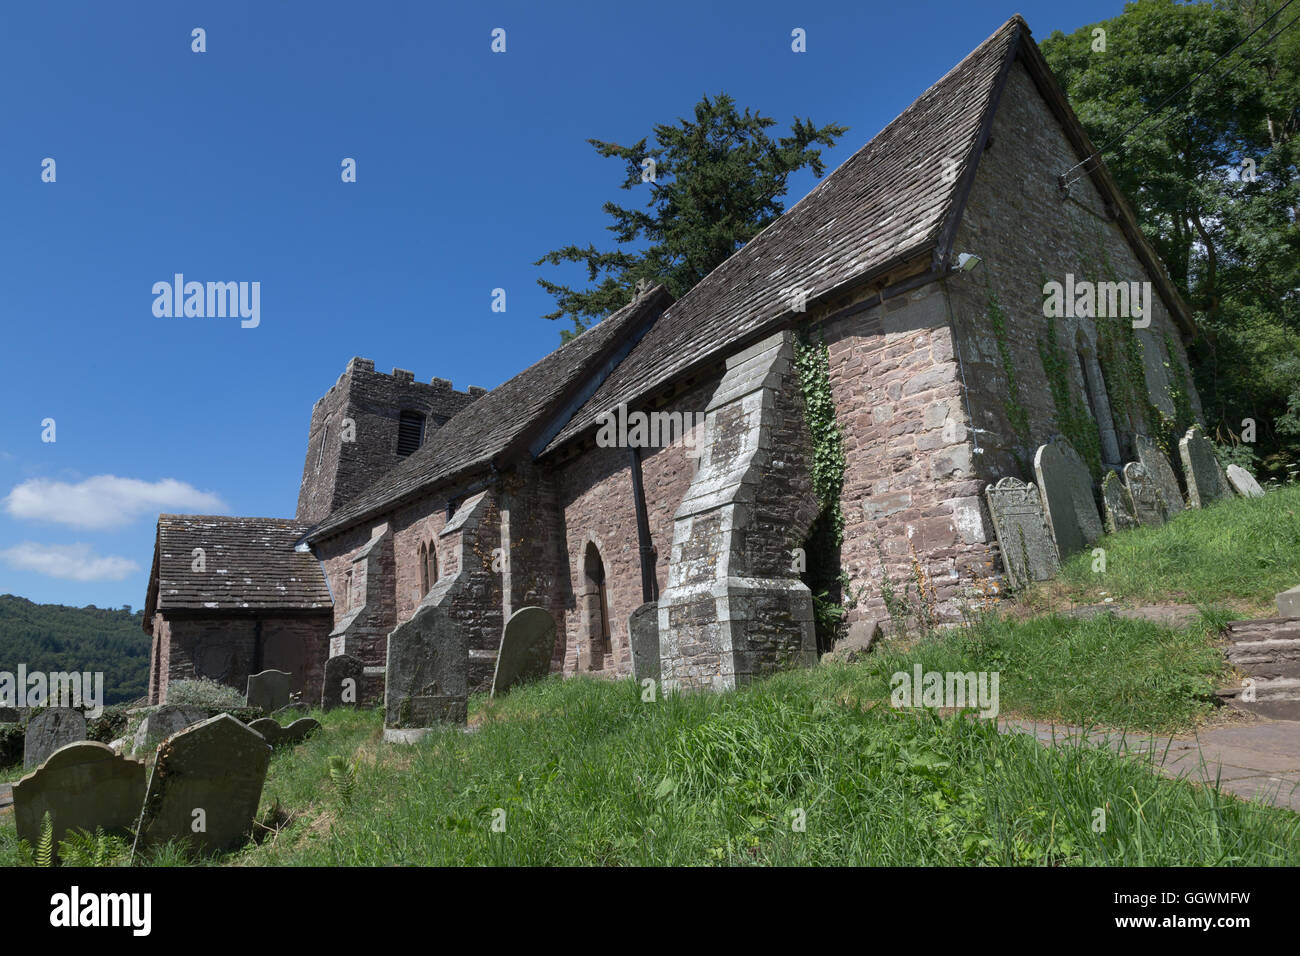 The charming crooked church of St Martin's at Cwmyoy, Monmouthshire. - Stock Image